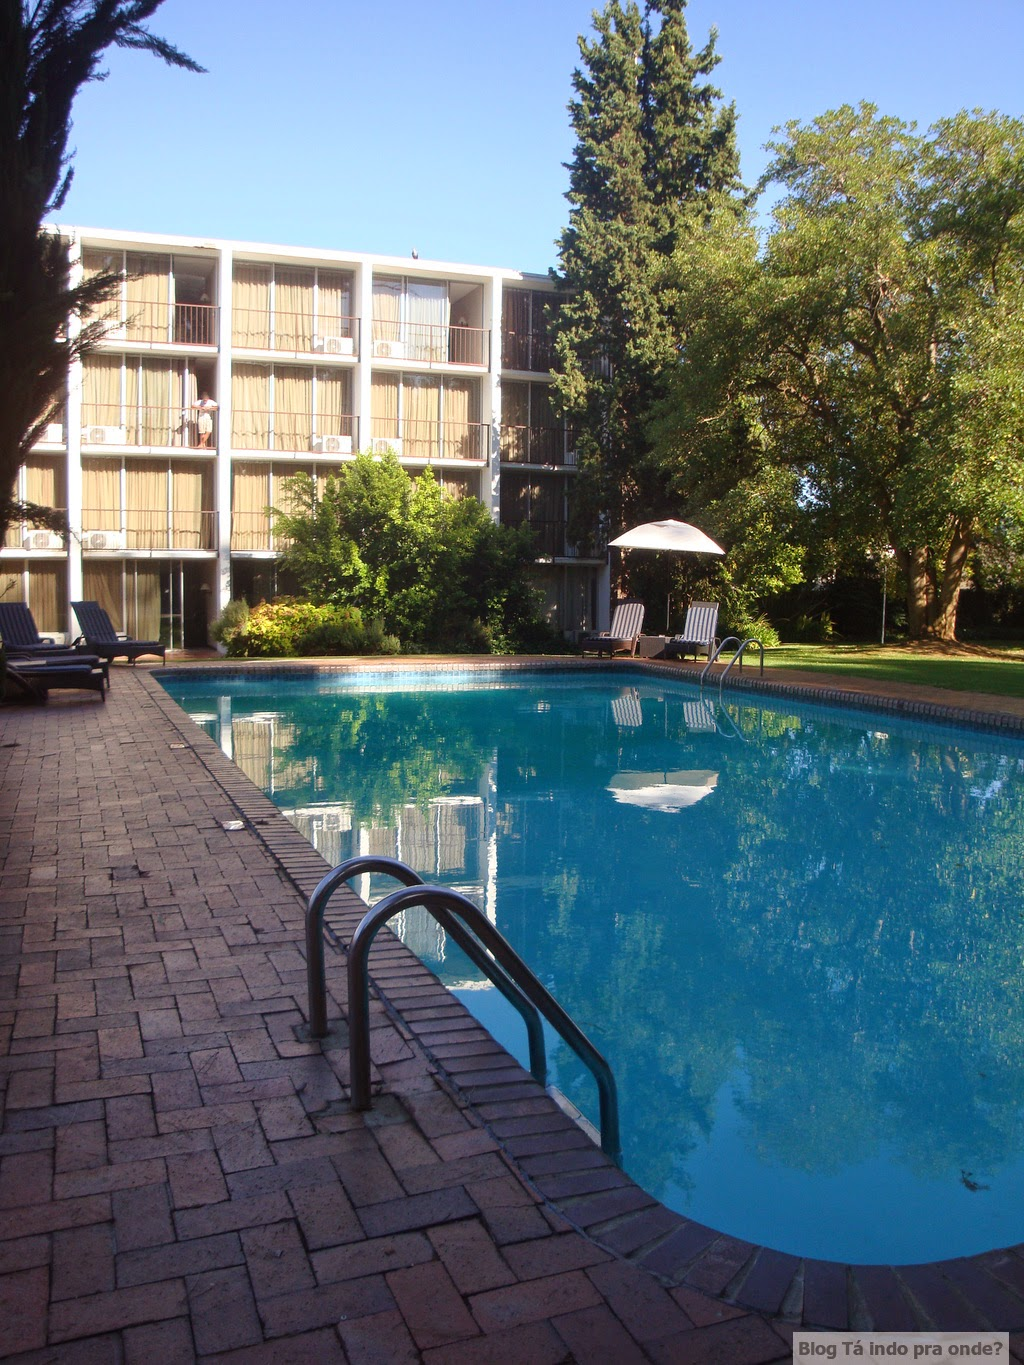 Hotel The Pearl of Oudtshoorn